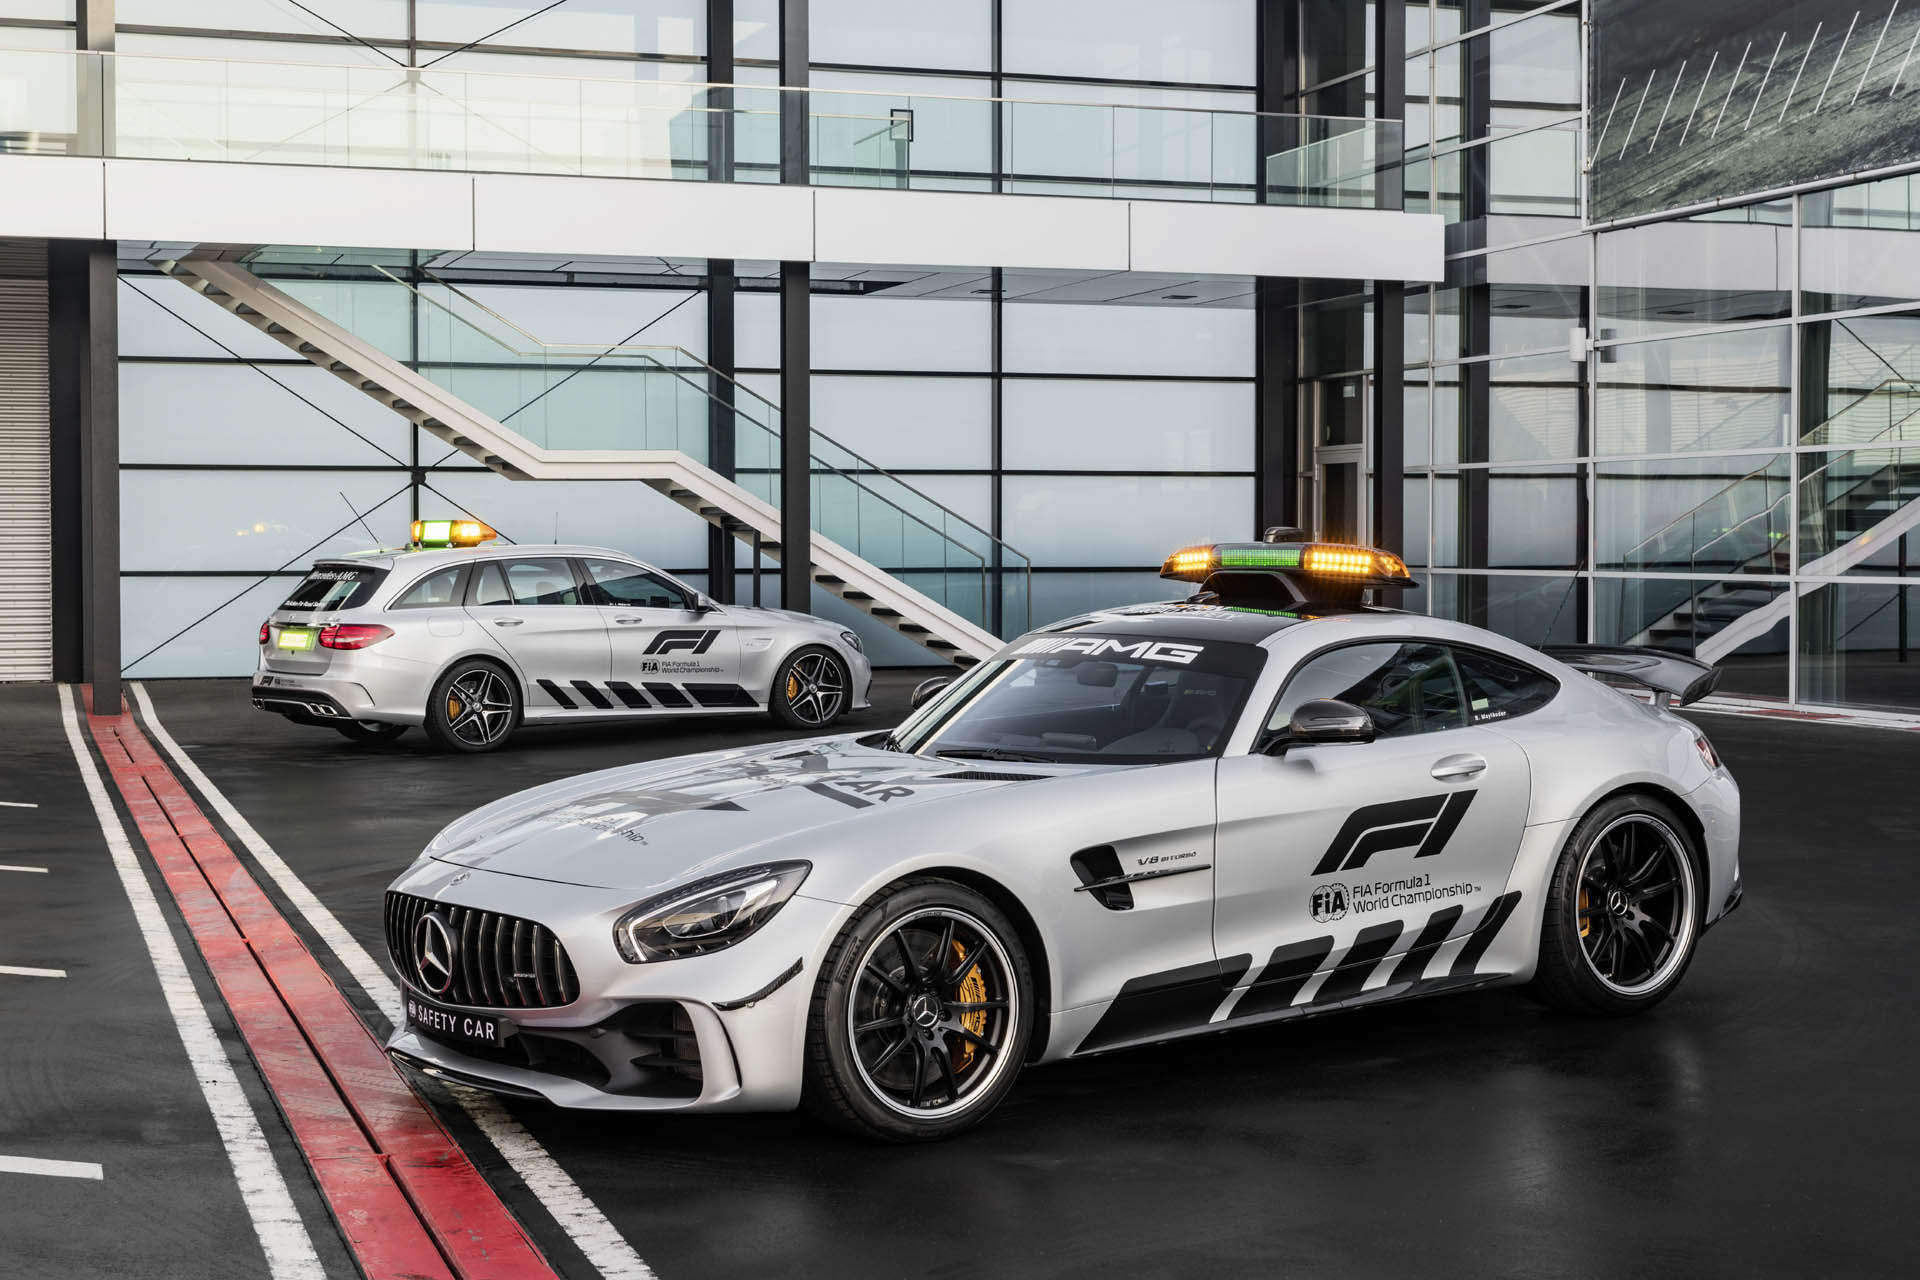 mercedes-amg-gt-r-f1-safety-car-10.jpg